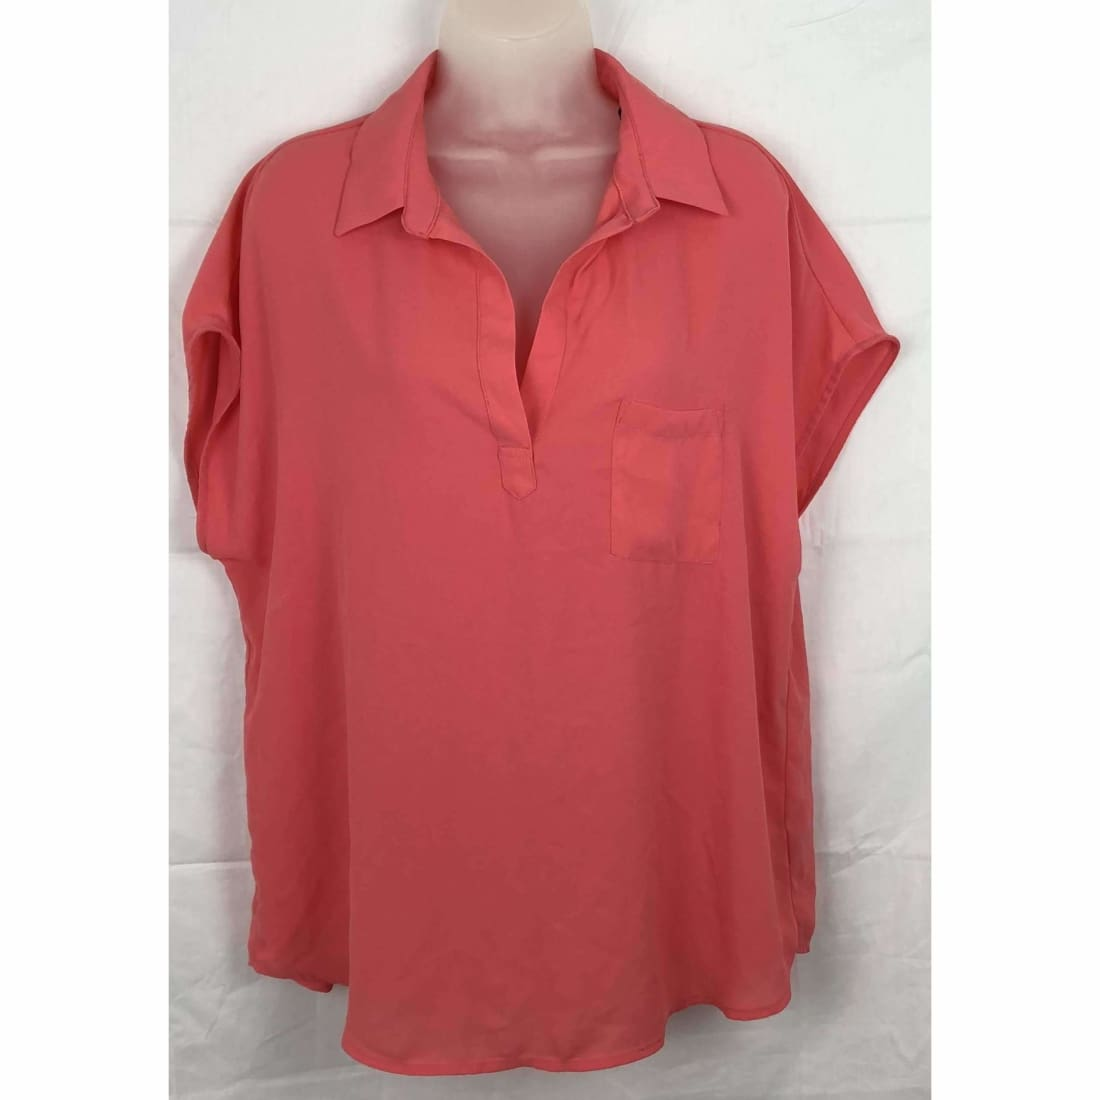 Pleione Womens Short Sleeve V-Neck Blouse Lt Coral Tops & Blouses